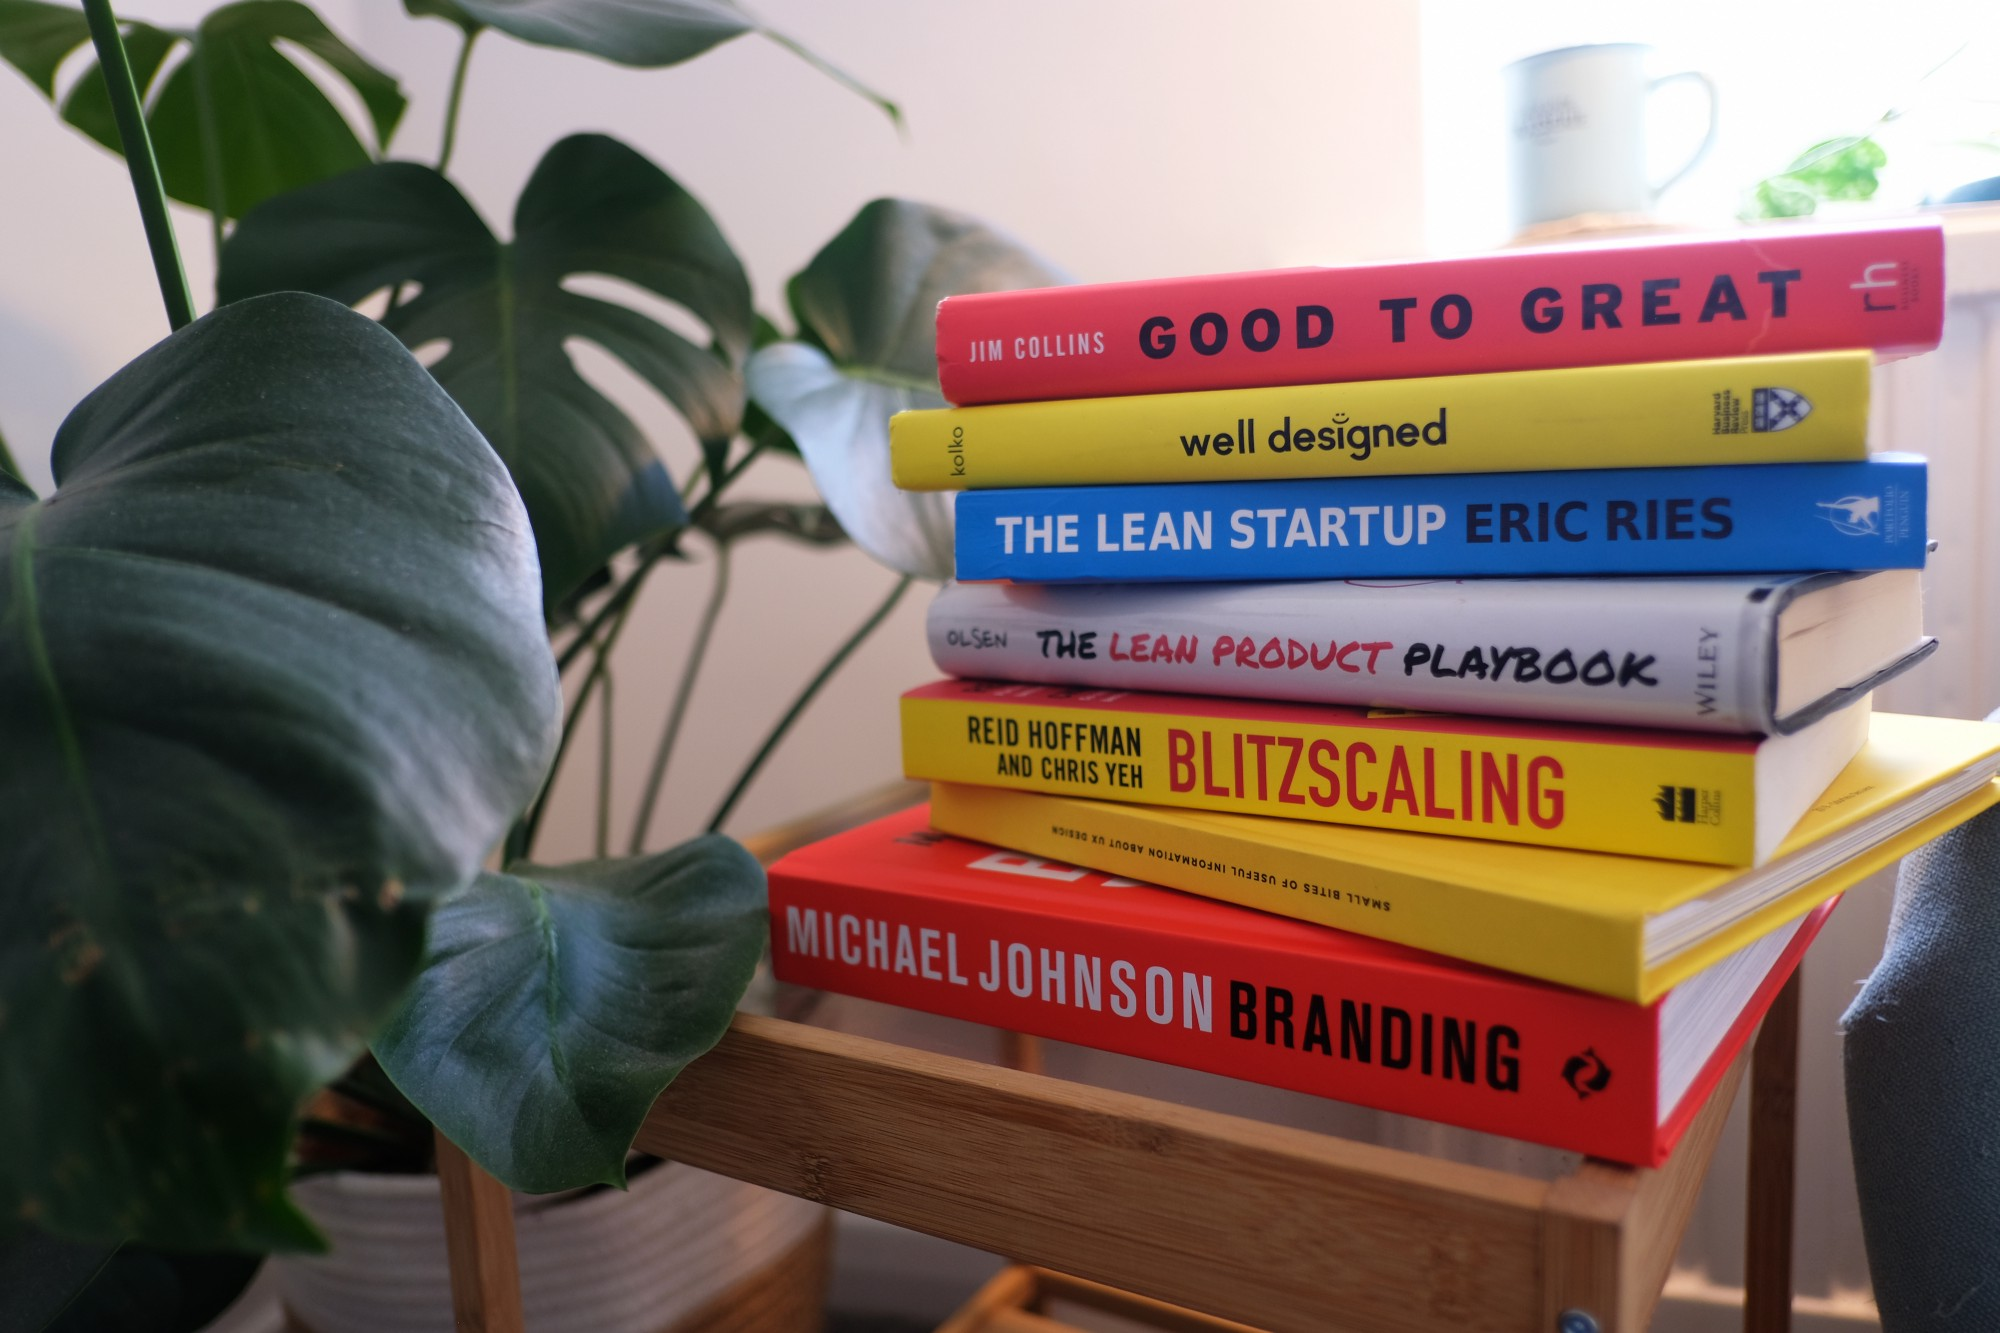 Stack of product management books on top of a table, next to a plant and in front of a window.